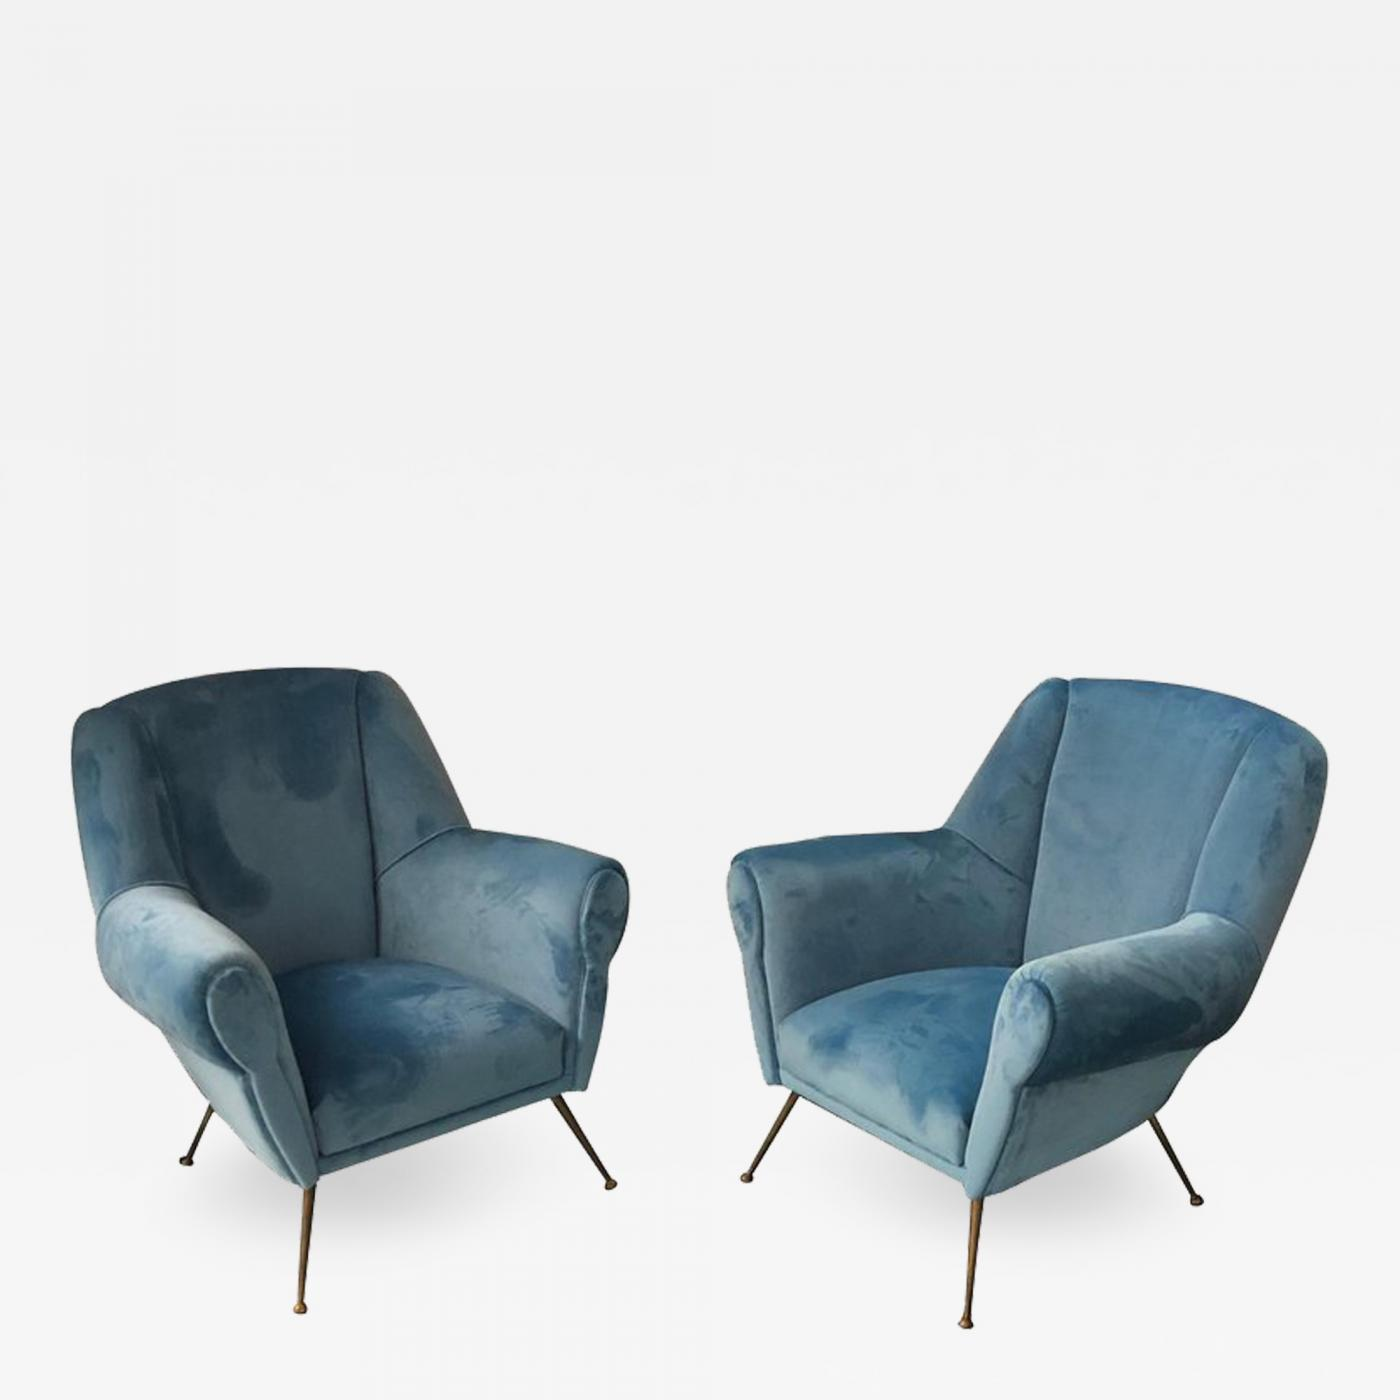 Swell Mid Century Modern Italian Light Blue Velvet And Brass Armchairs 1950 Pabps2019 Chair Design Images Pabps2019Com